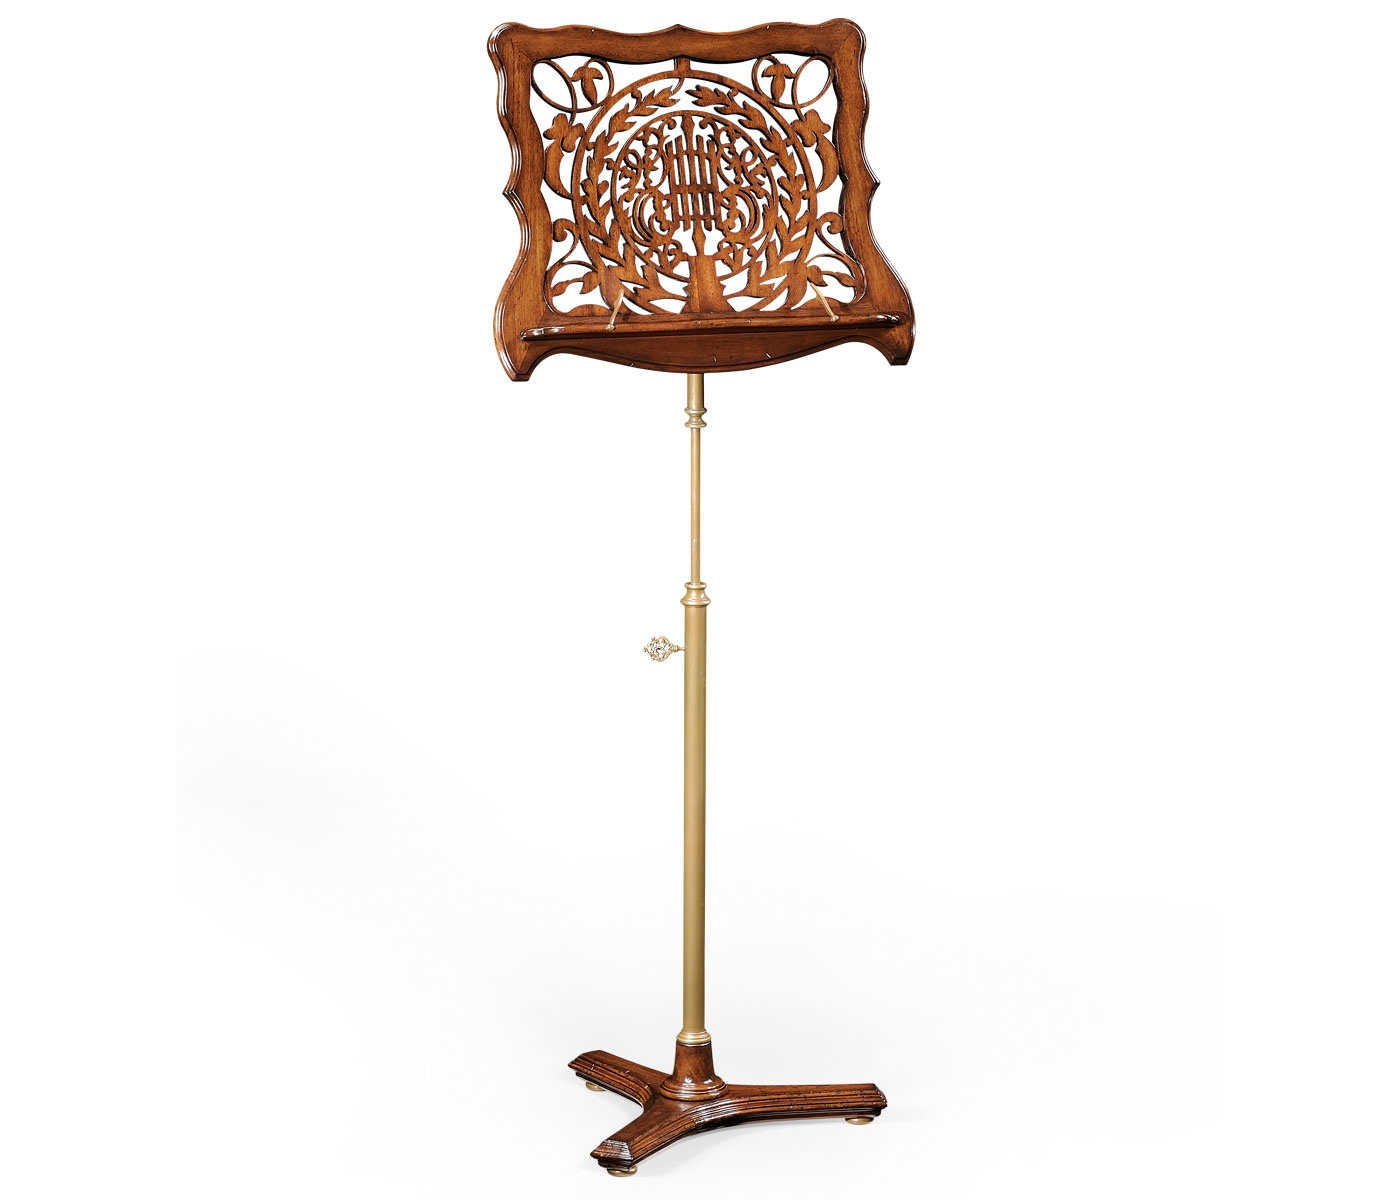 Adjustable wooden music stand with fretwork swanky interiors for Decorative accessories